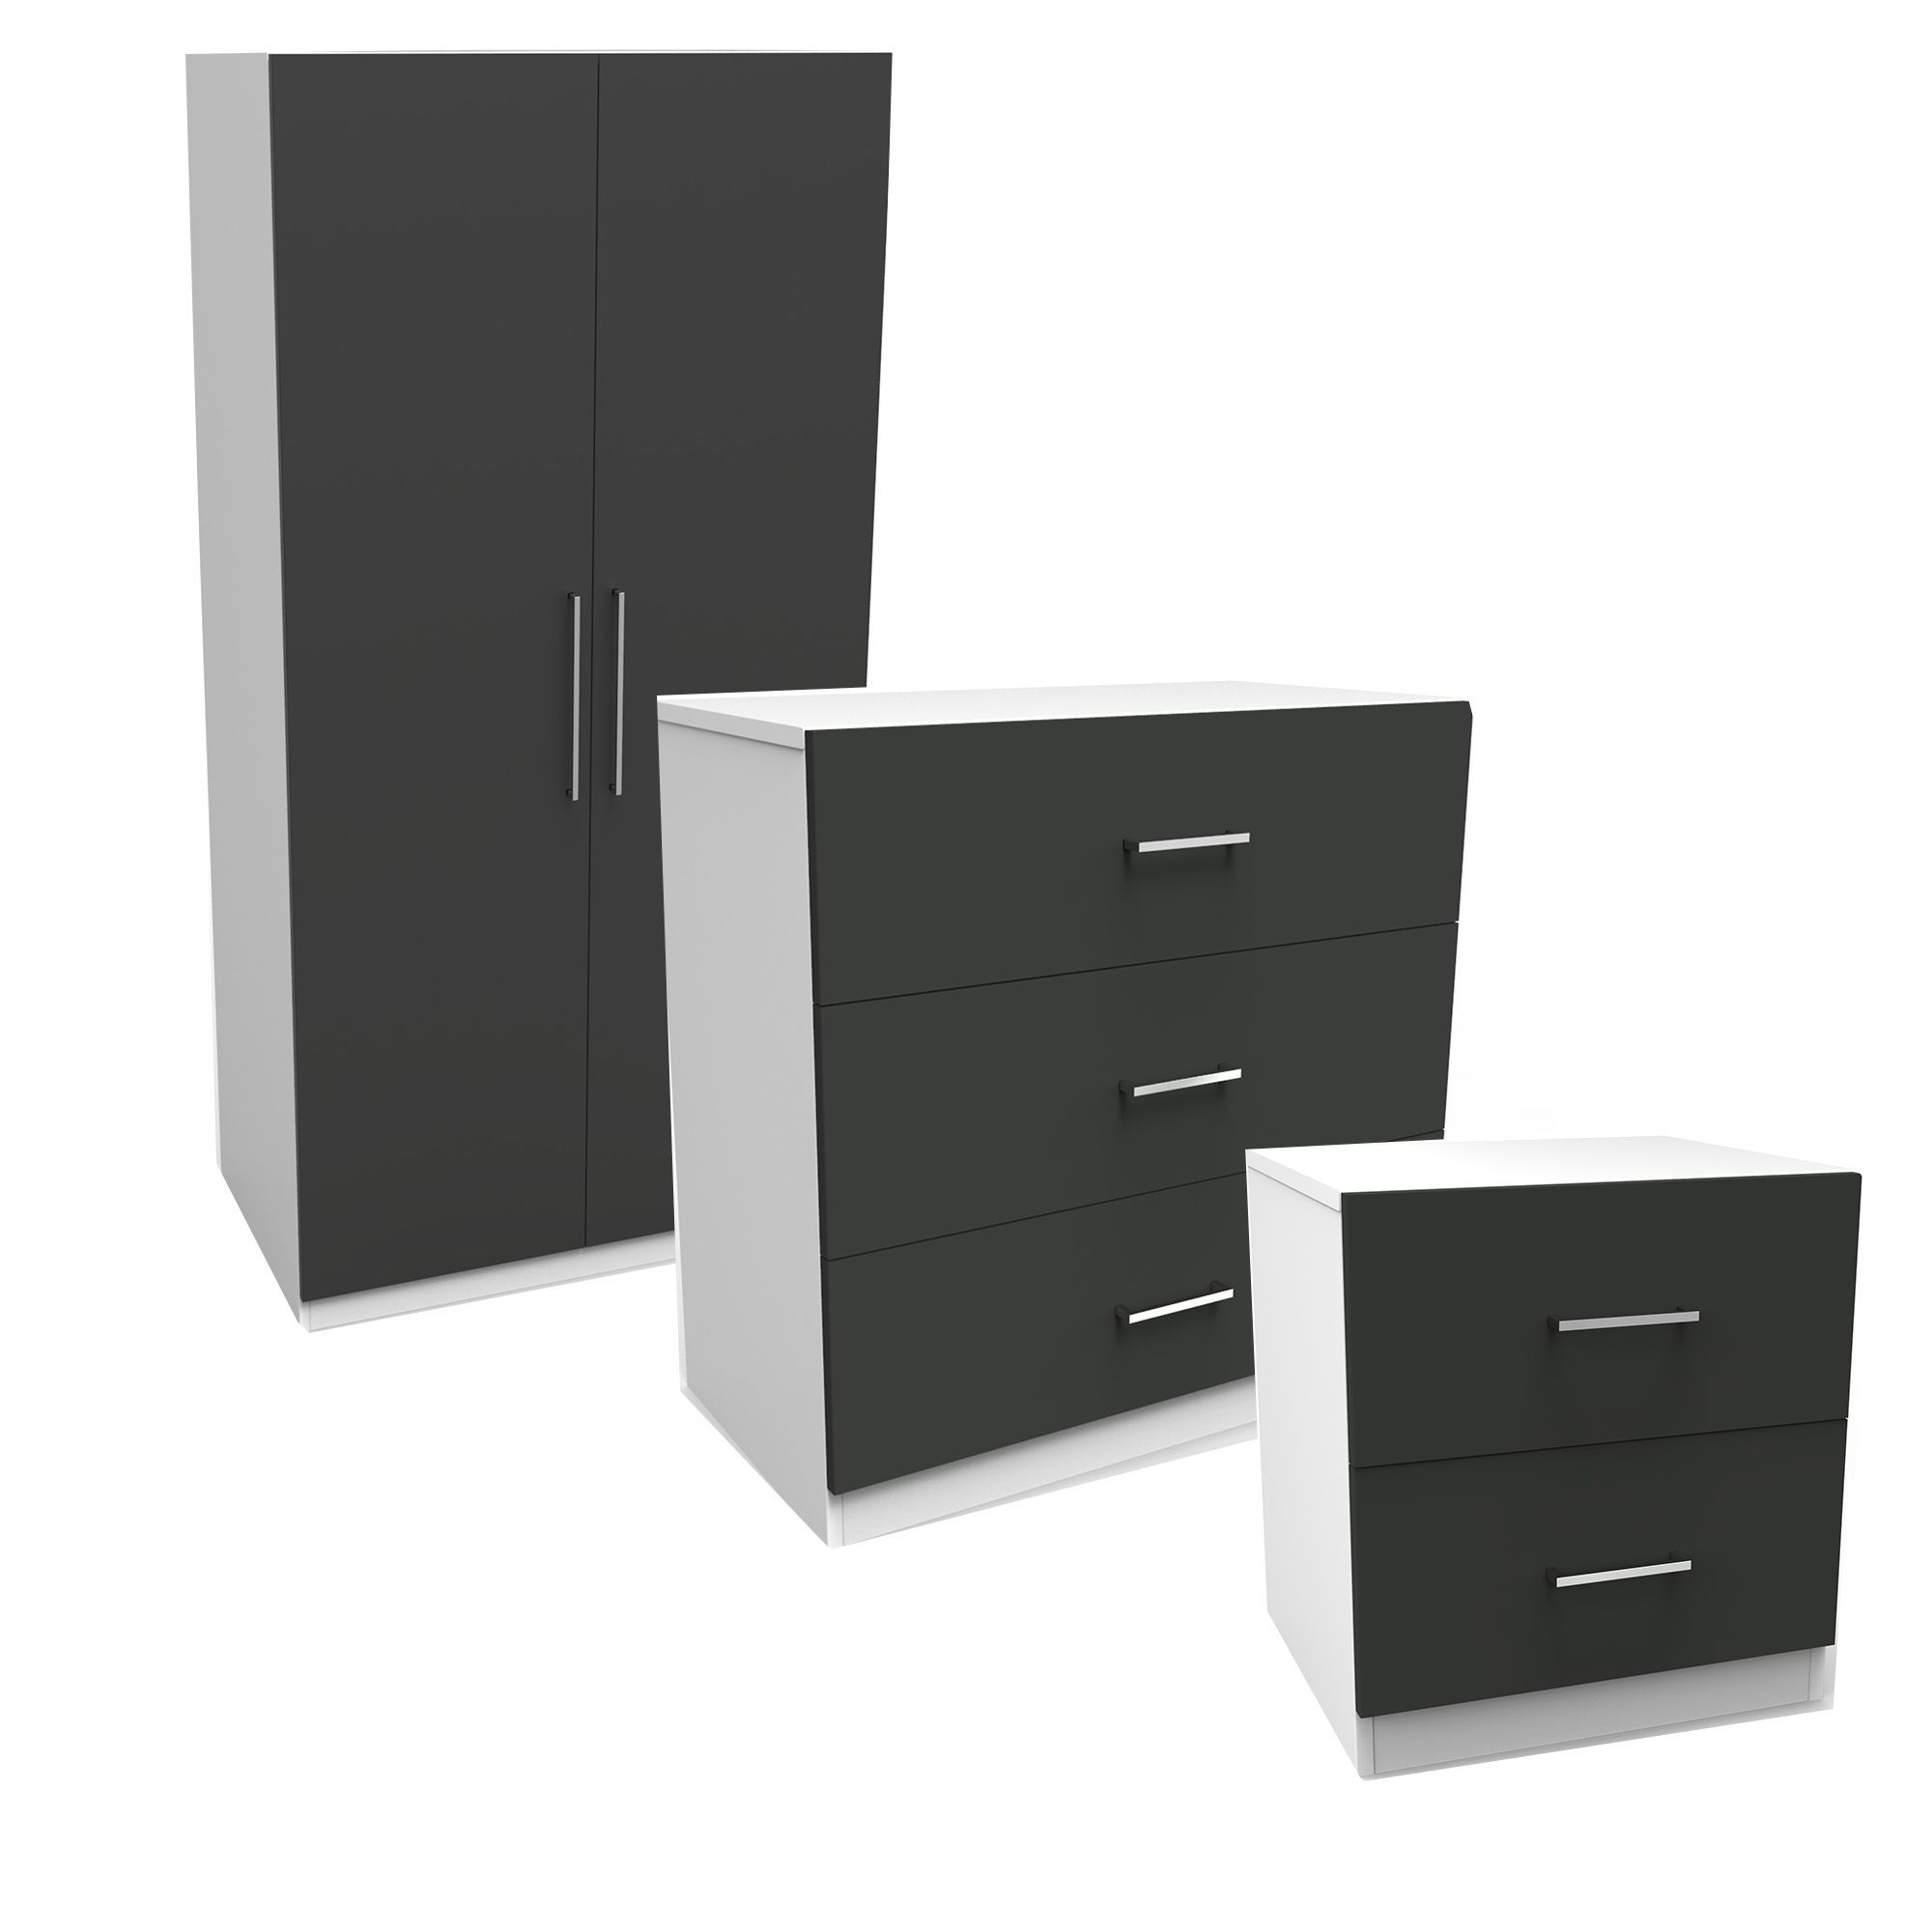 Darwin Anthracite U0026 White 3 Piece Bedroom Furniture Set